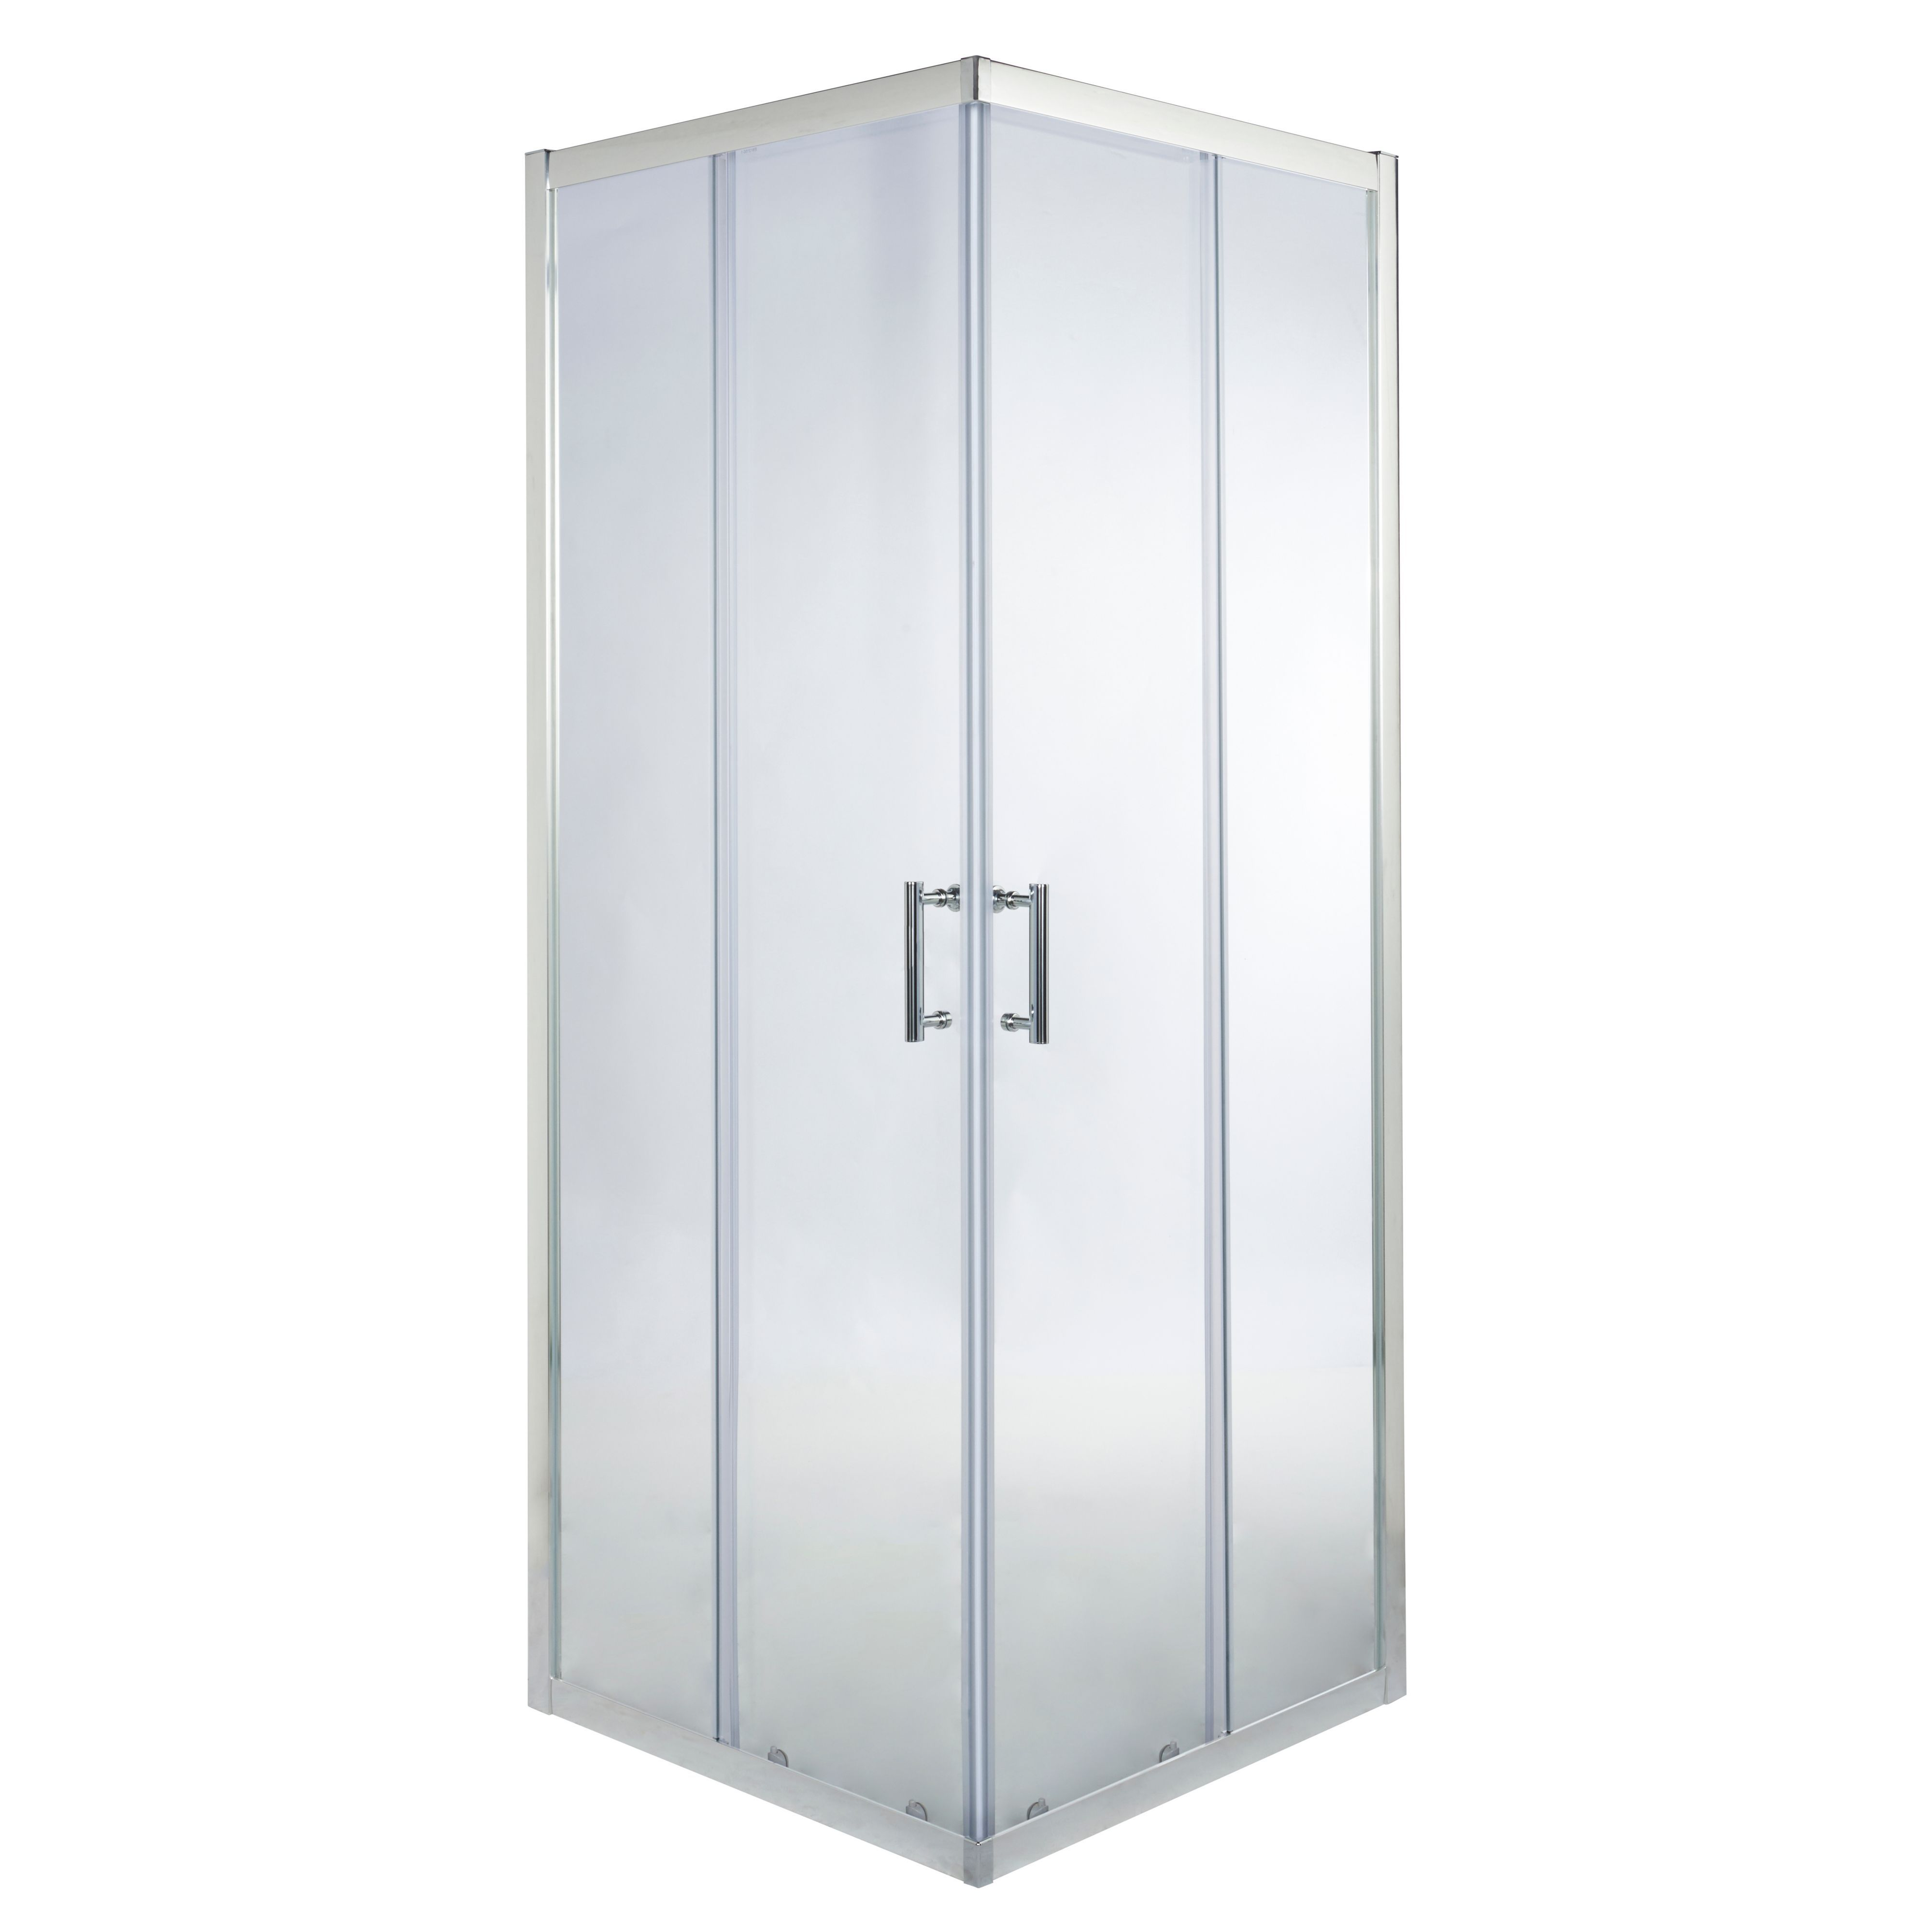 Cooke Lewis Onega Square Shower Enclosure With Corner Entry Double Sliding Door W 800mm D 800mm Departments Diy At B Q